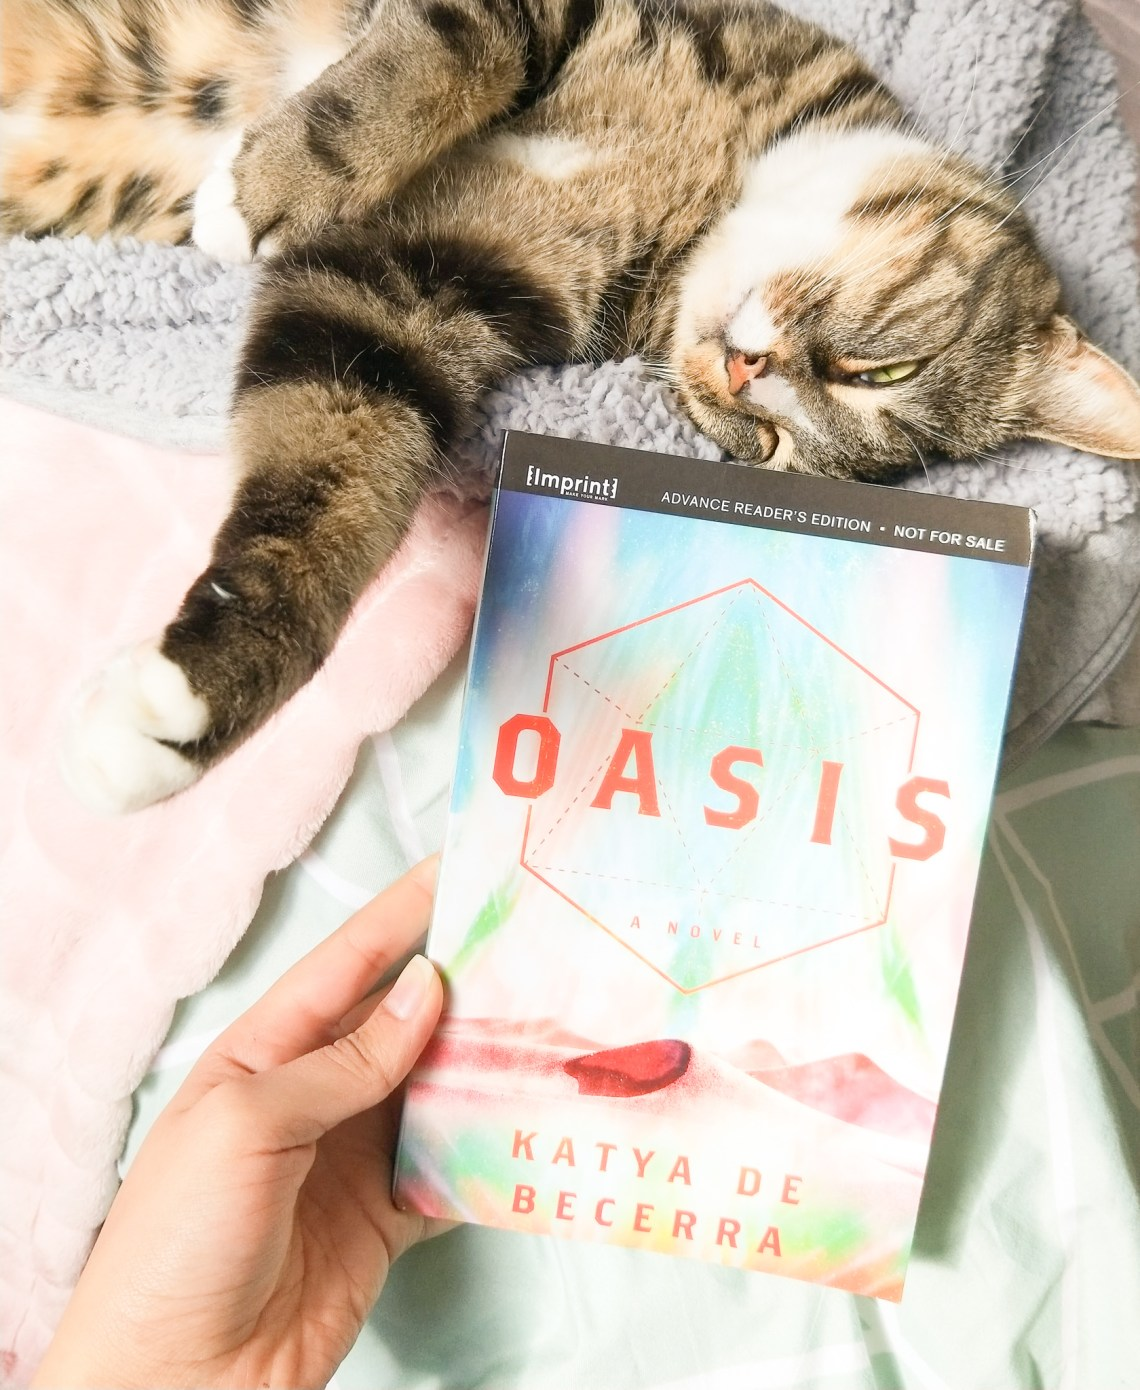 67892665 350898332486966 2013886349500743680 n - Author Interview: Oasis' Katya De Becerra